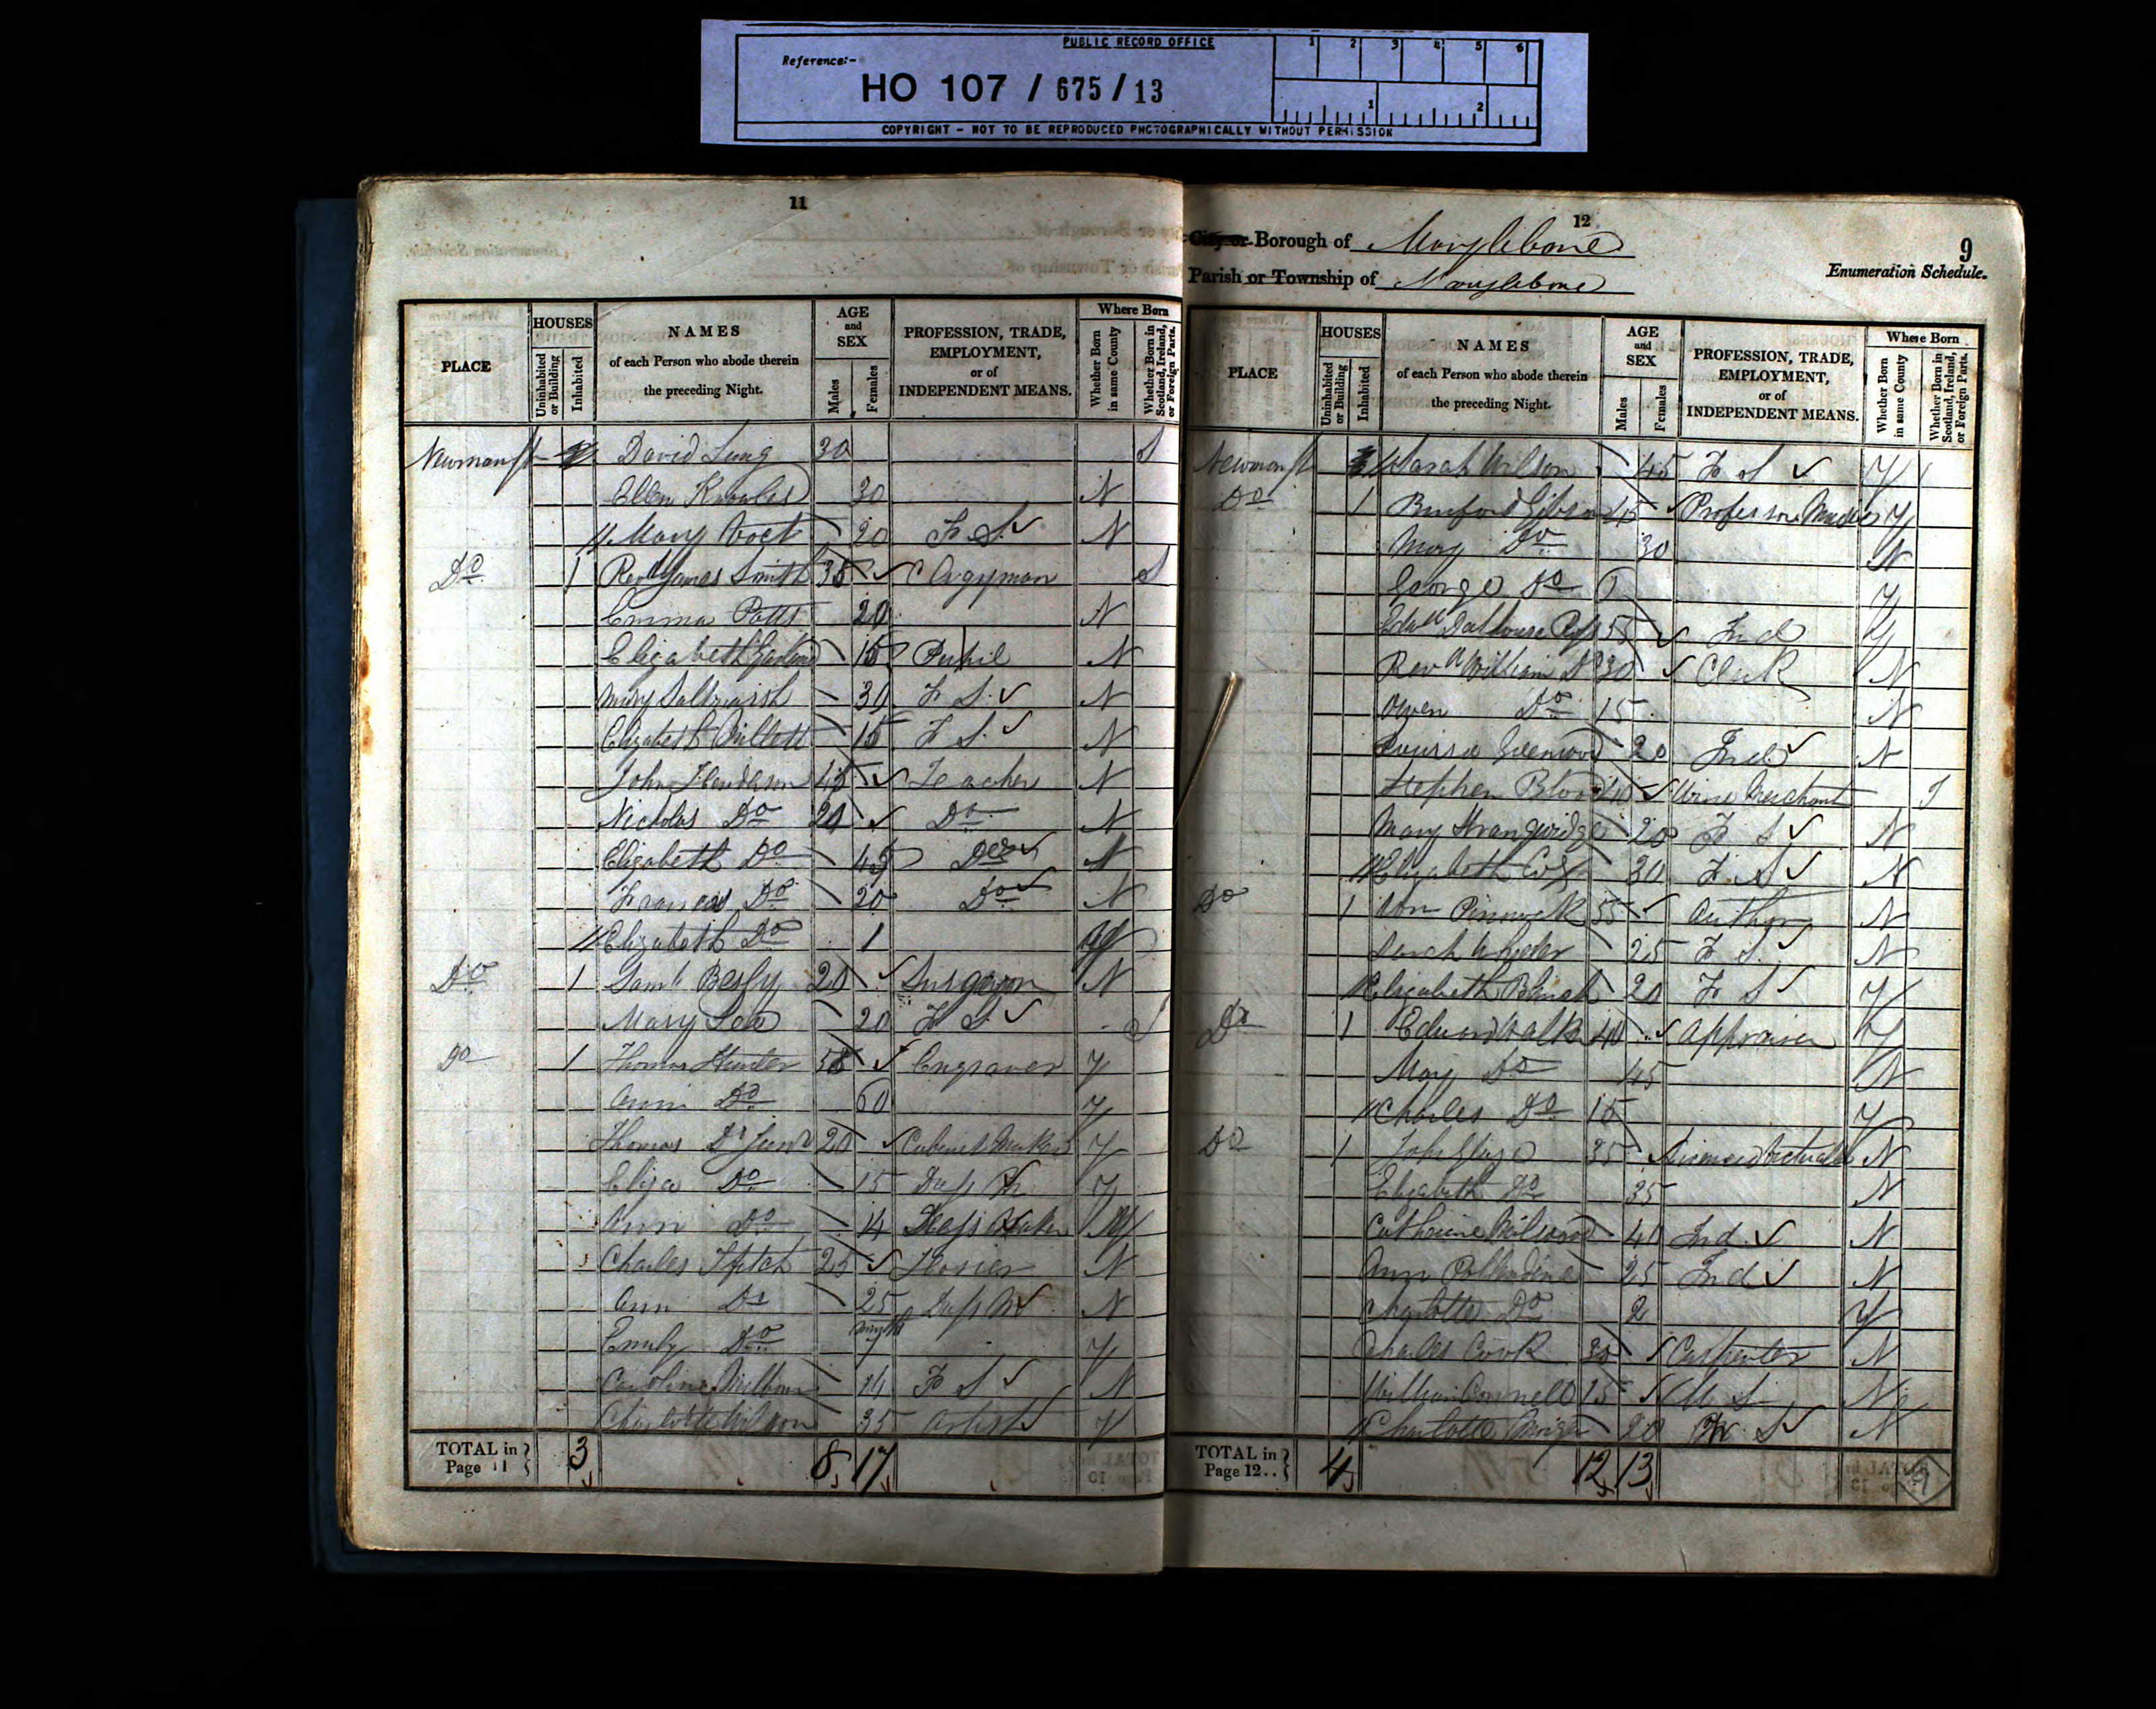 1841 England Census Record for Ann Pollendine (b1814)